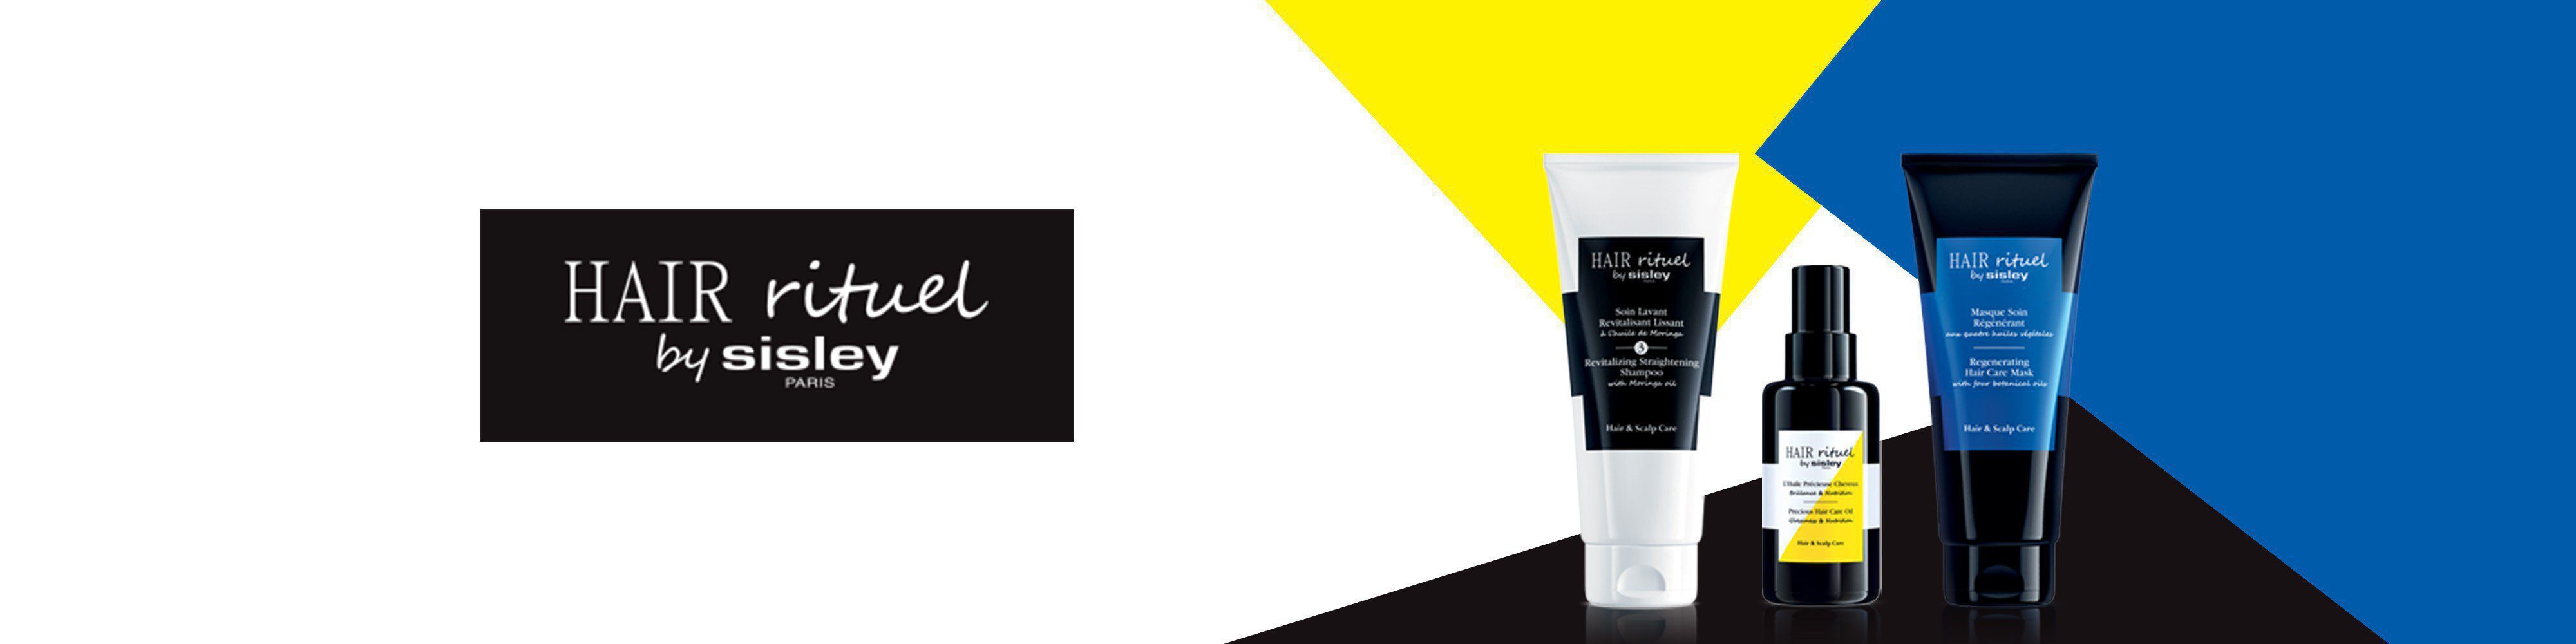 brands/products/hair-rituel